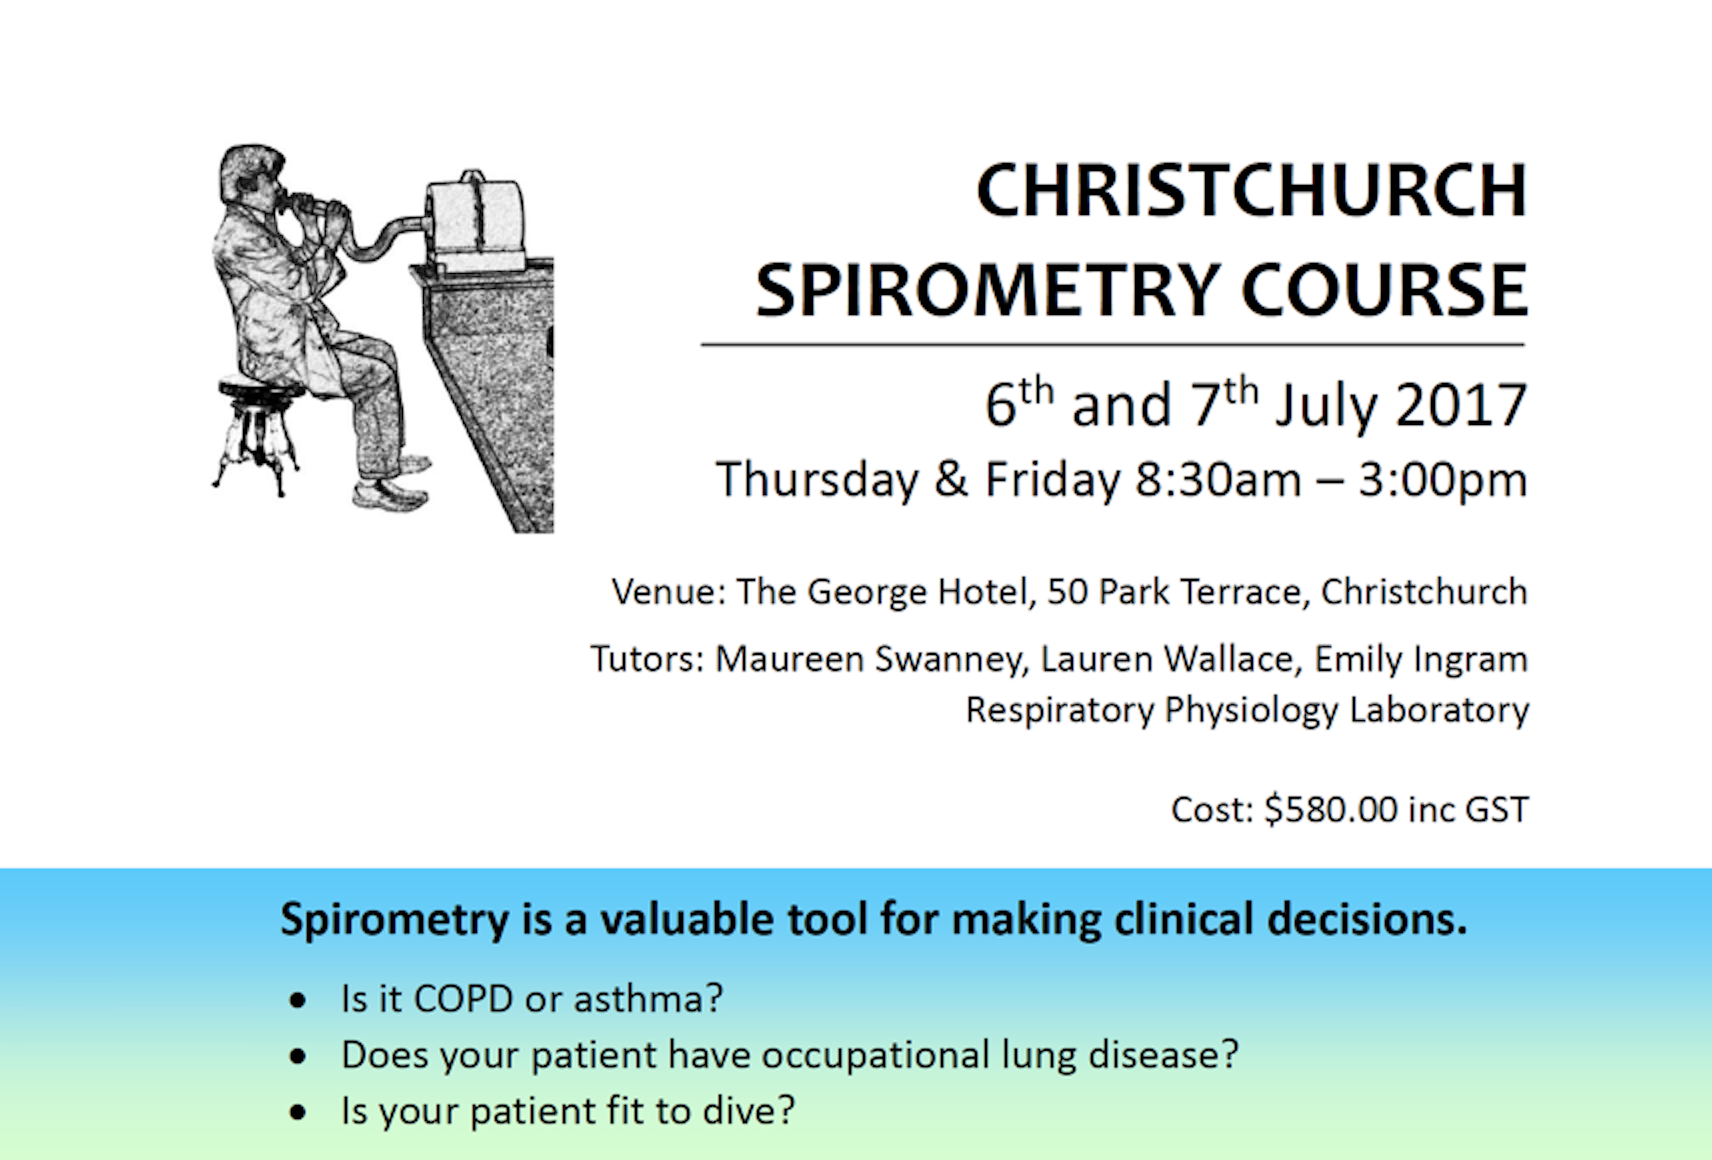 Spirometry Course Image 2017